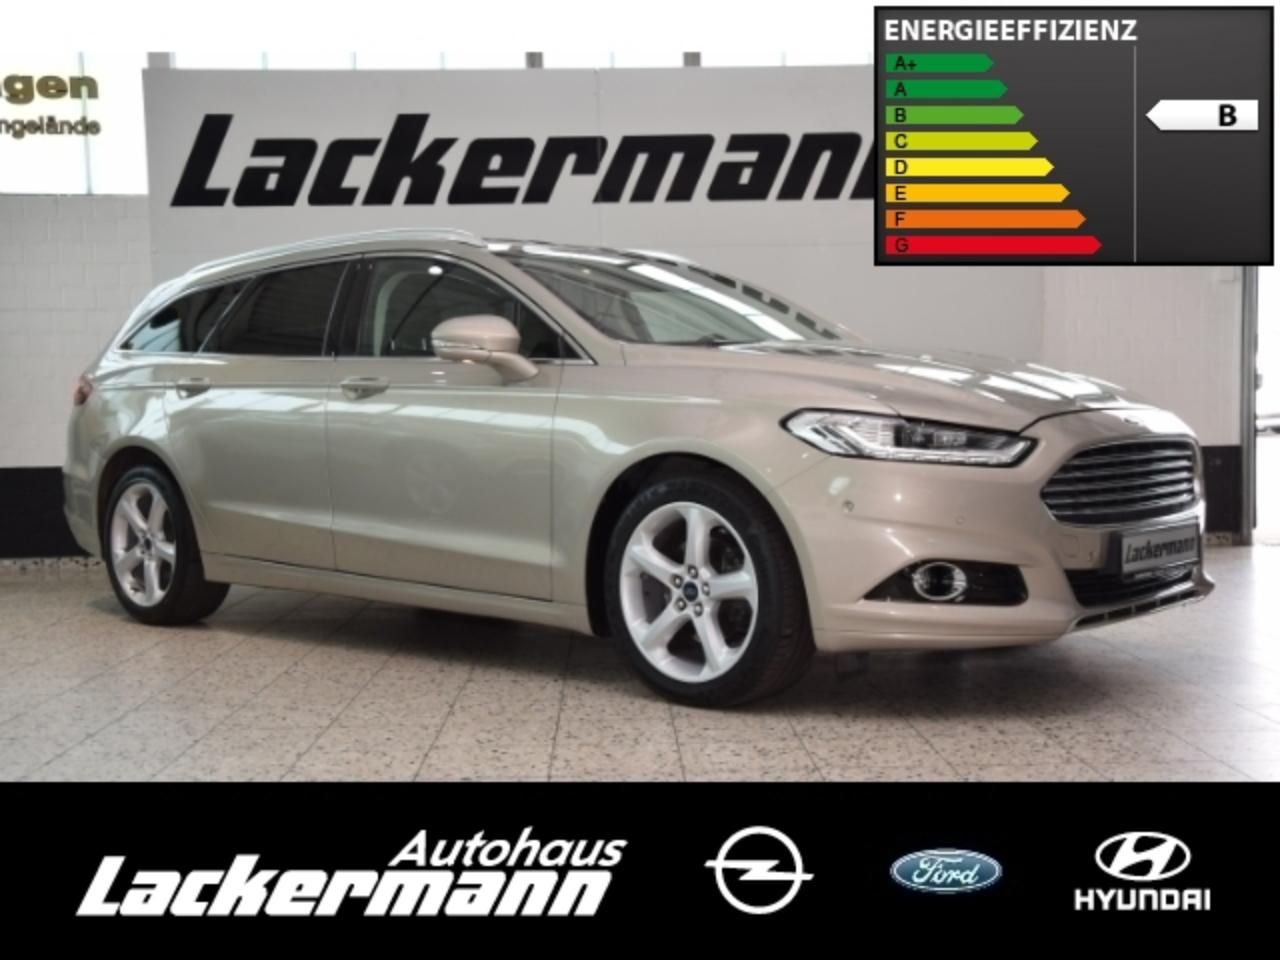 Ford Mondeo Turnier Titanium AWD 2.0 TDCi Power-Shift,Leder-Al